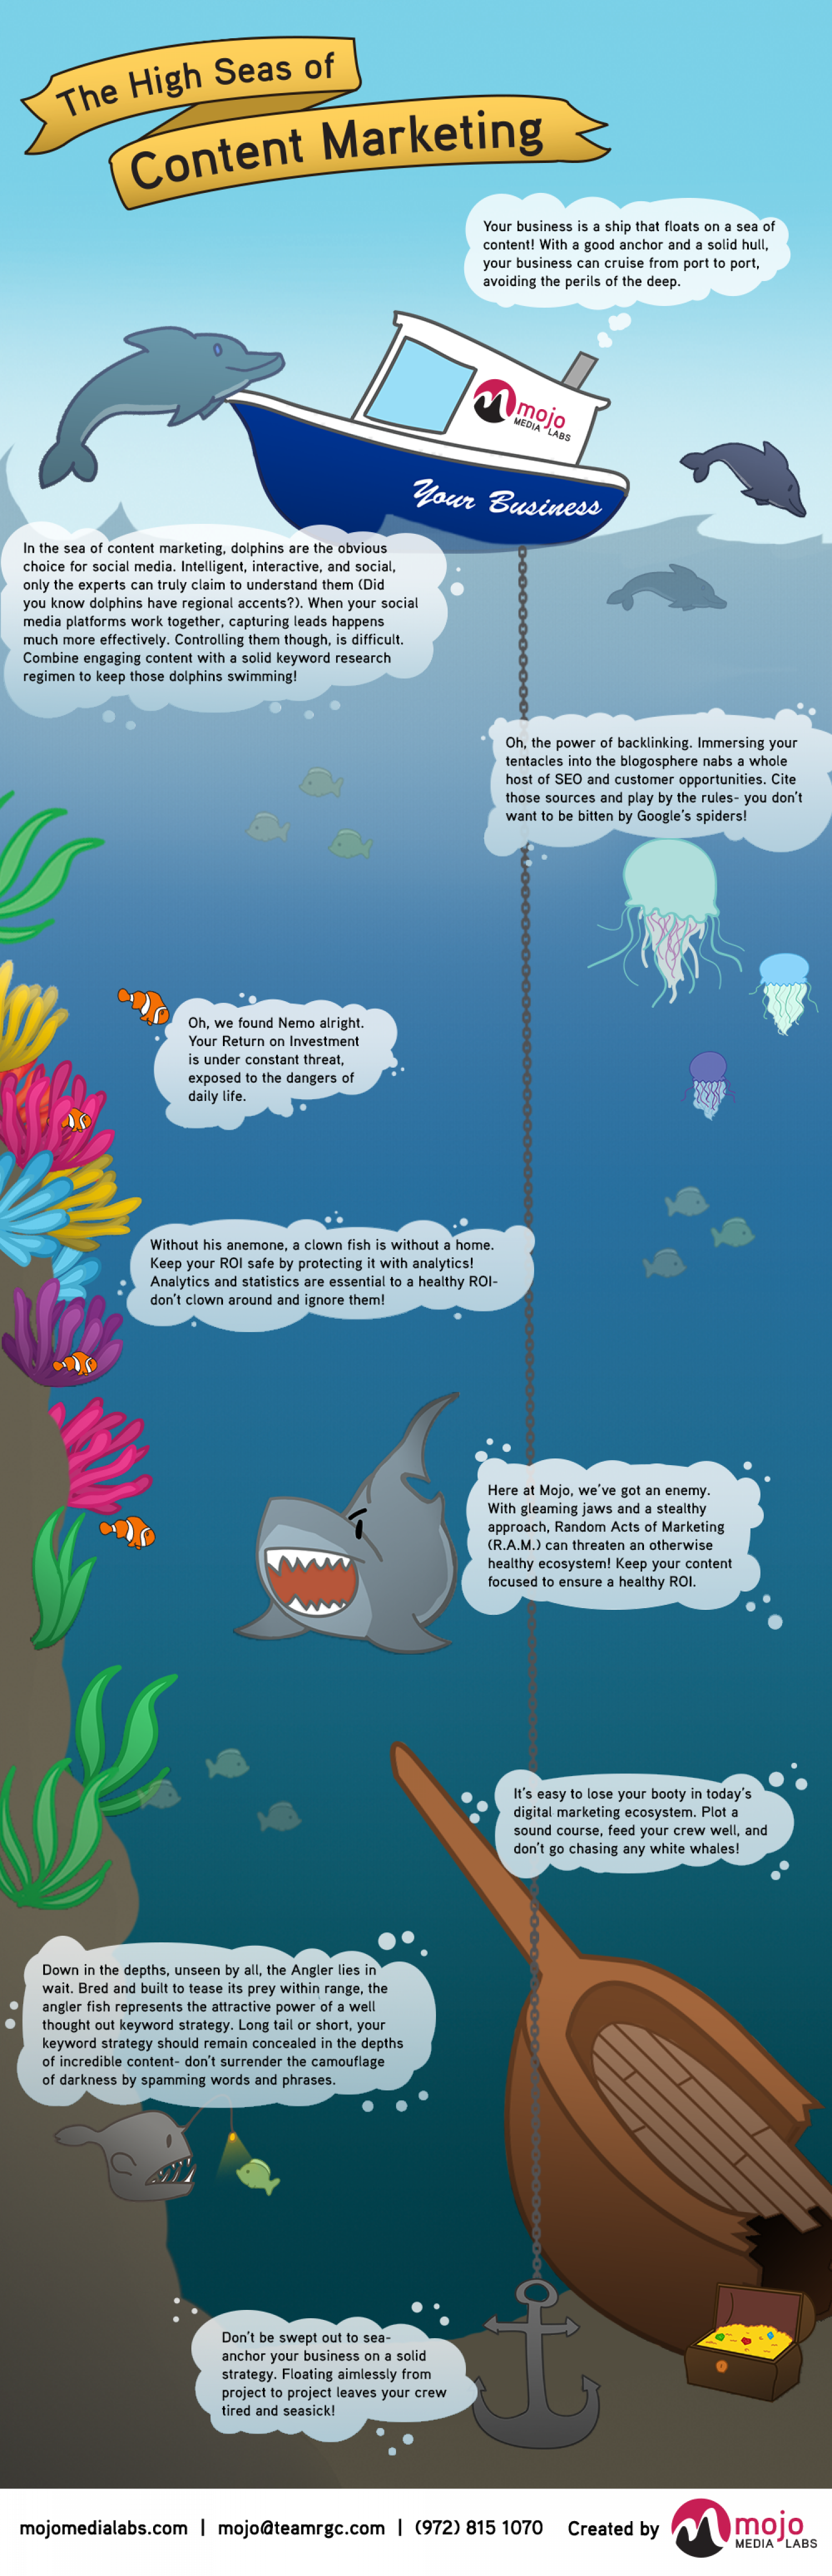 The High Seas of Content Marketing Infographic